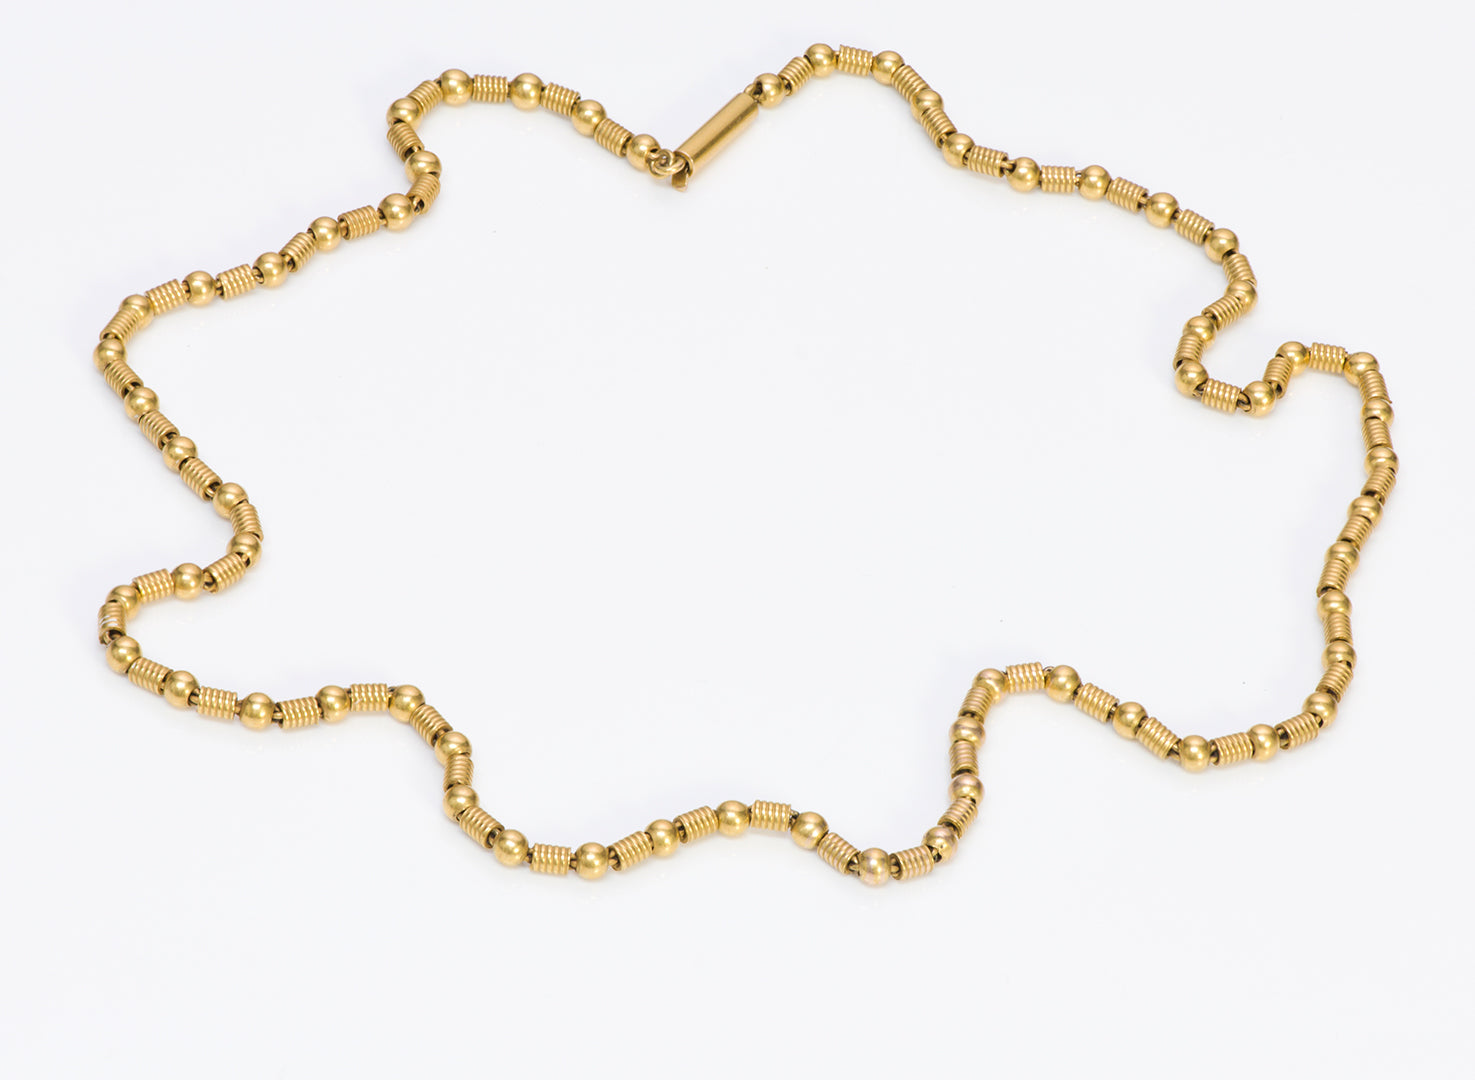 Antique Yellow Gold Bead Necklace